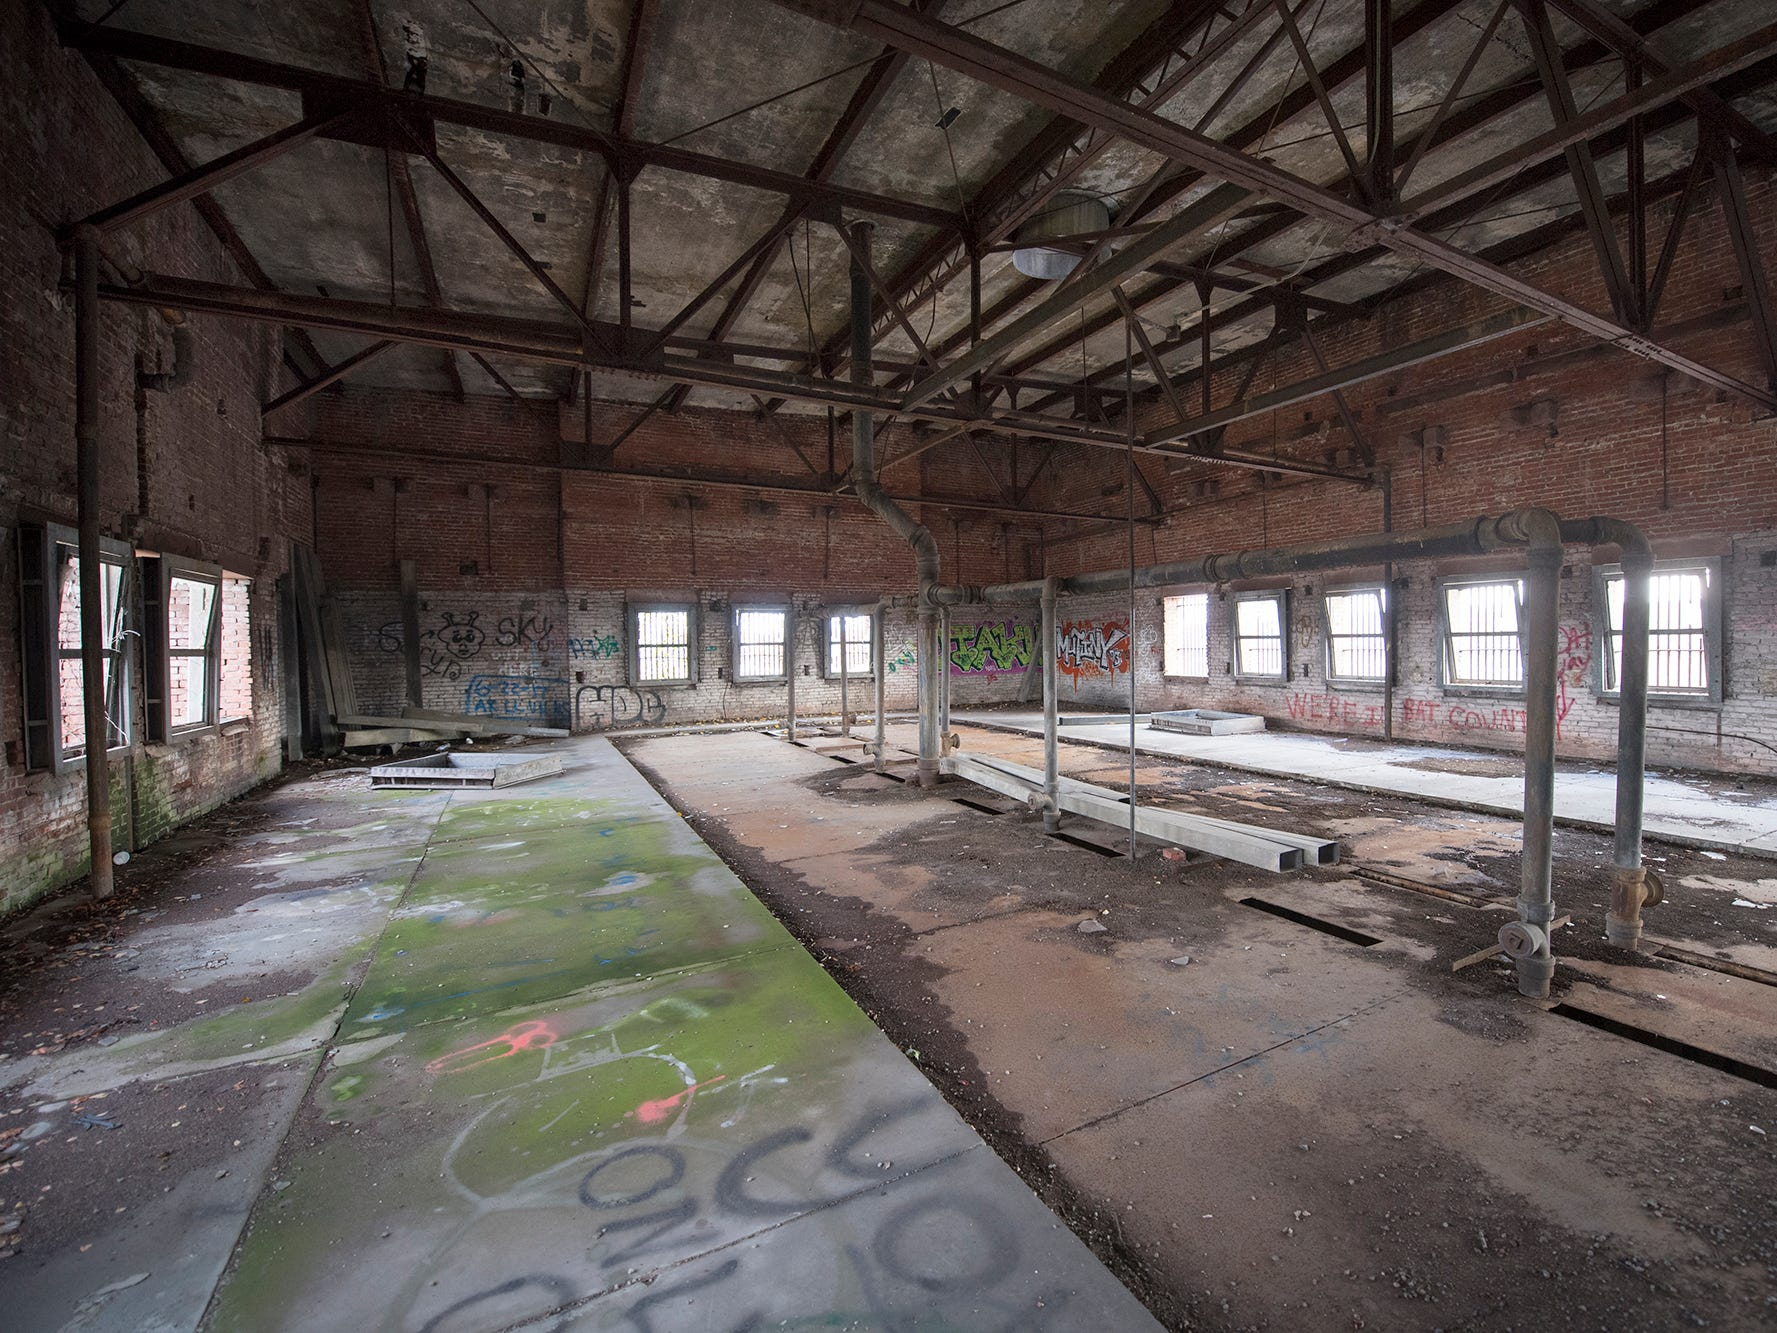 This is the unused top floor of the old York County Prison.